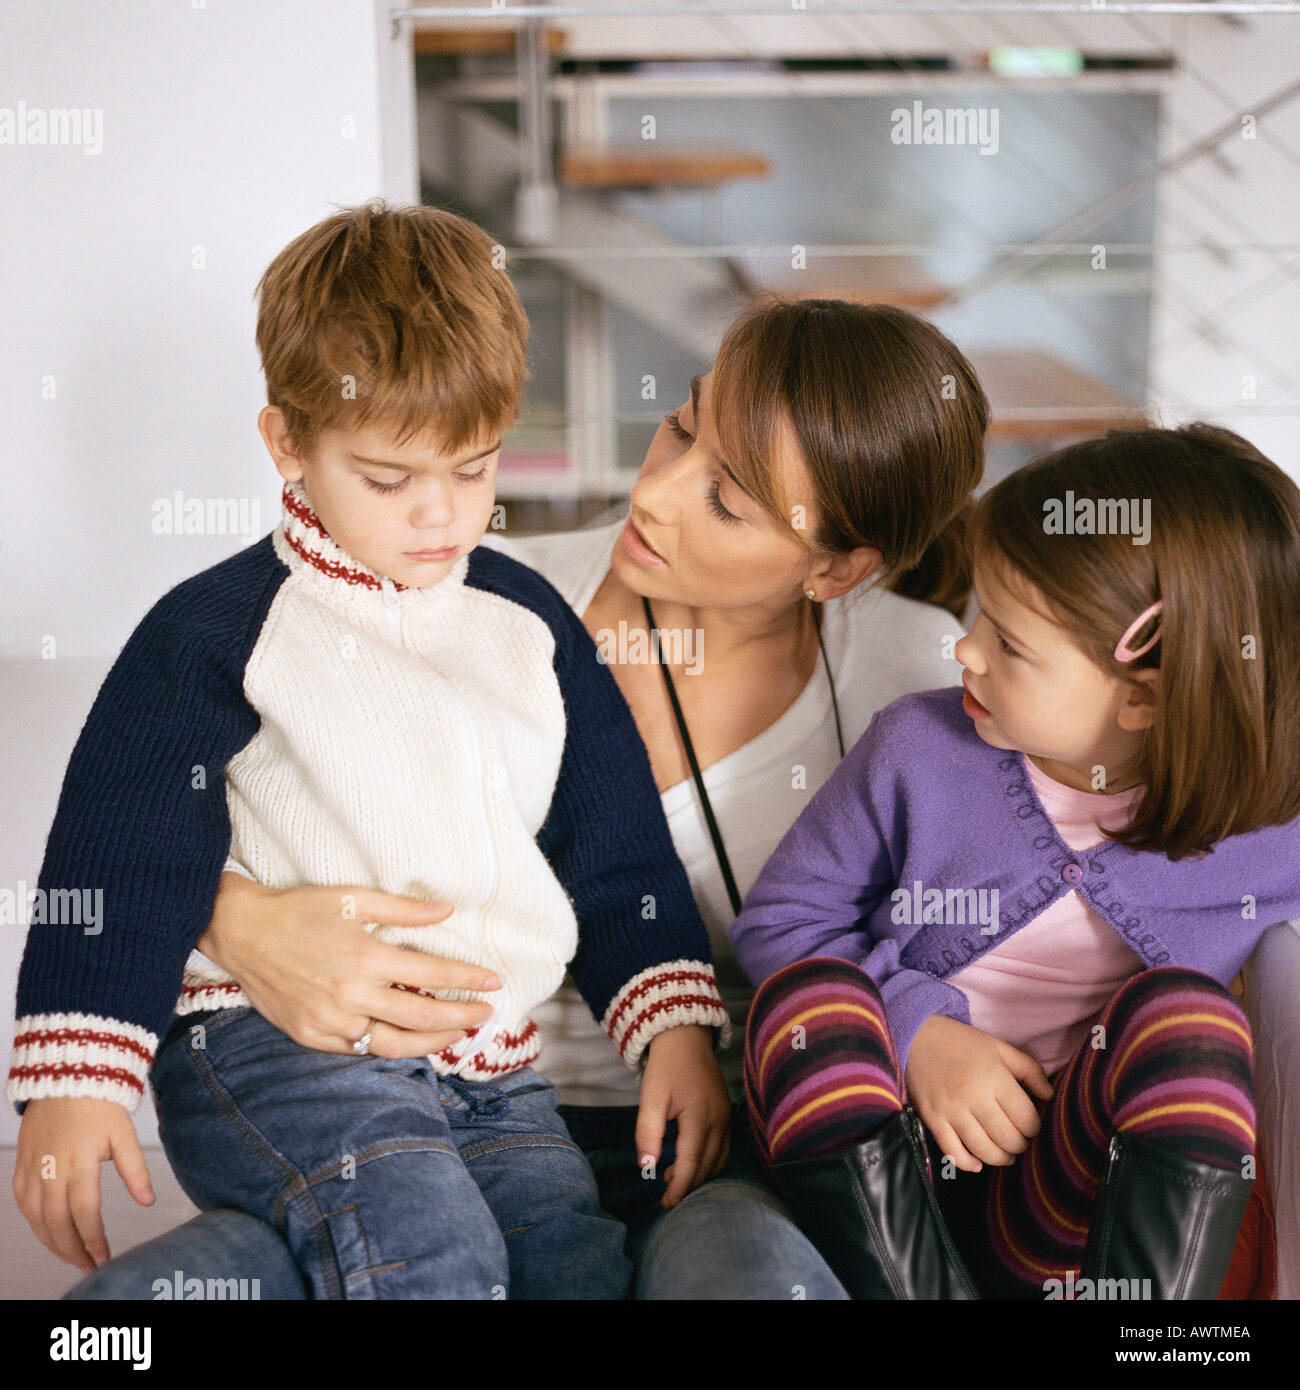 Mother sitting with children, looking at son - Stock Image